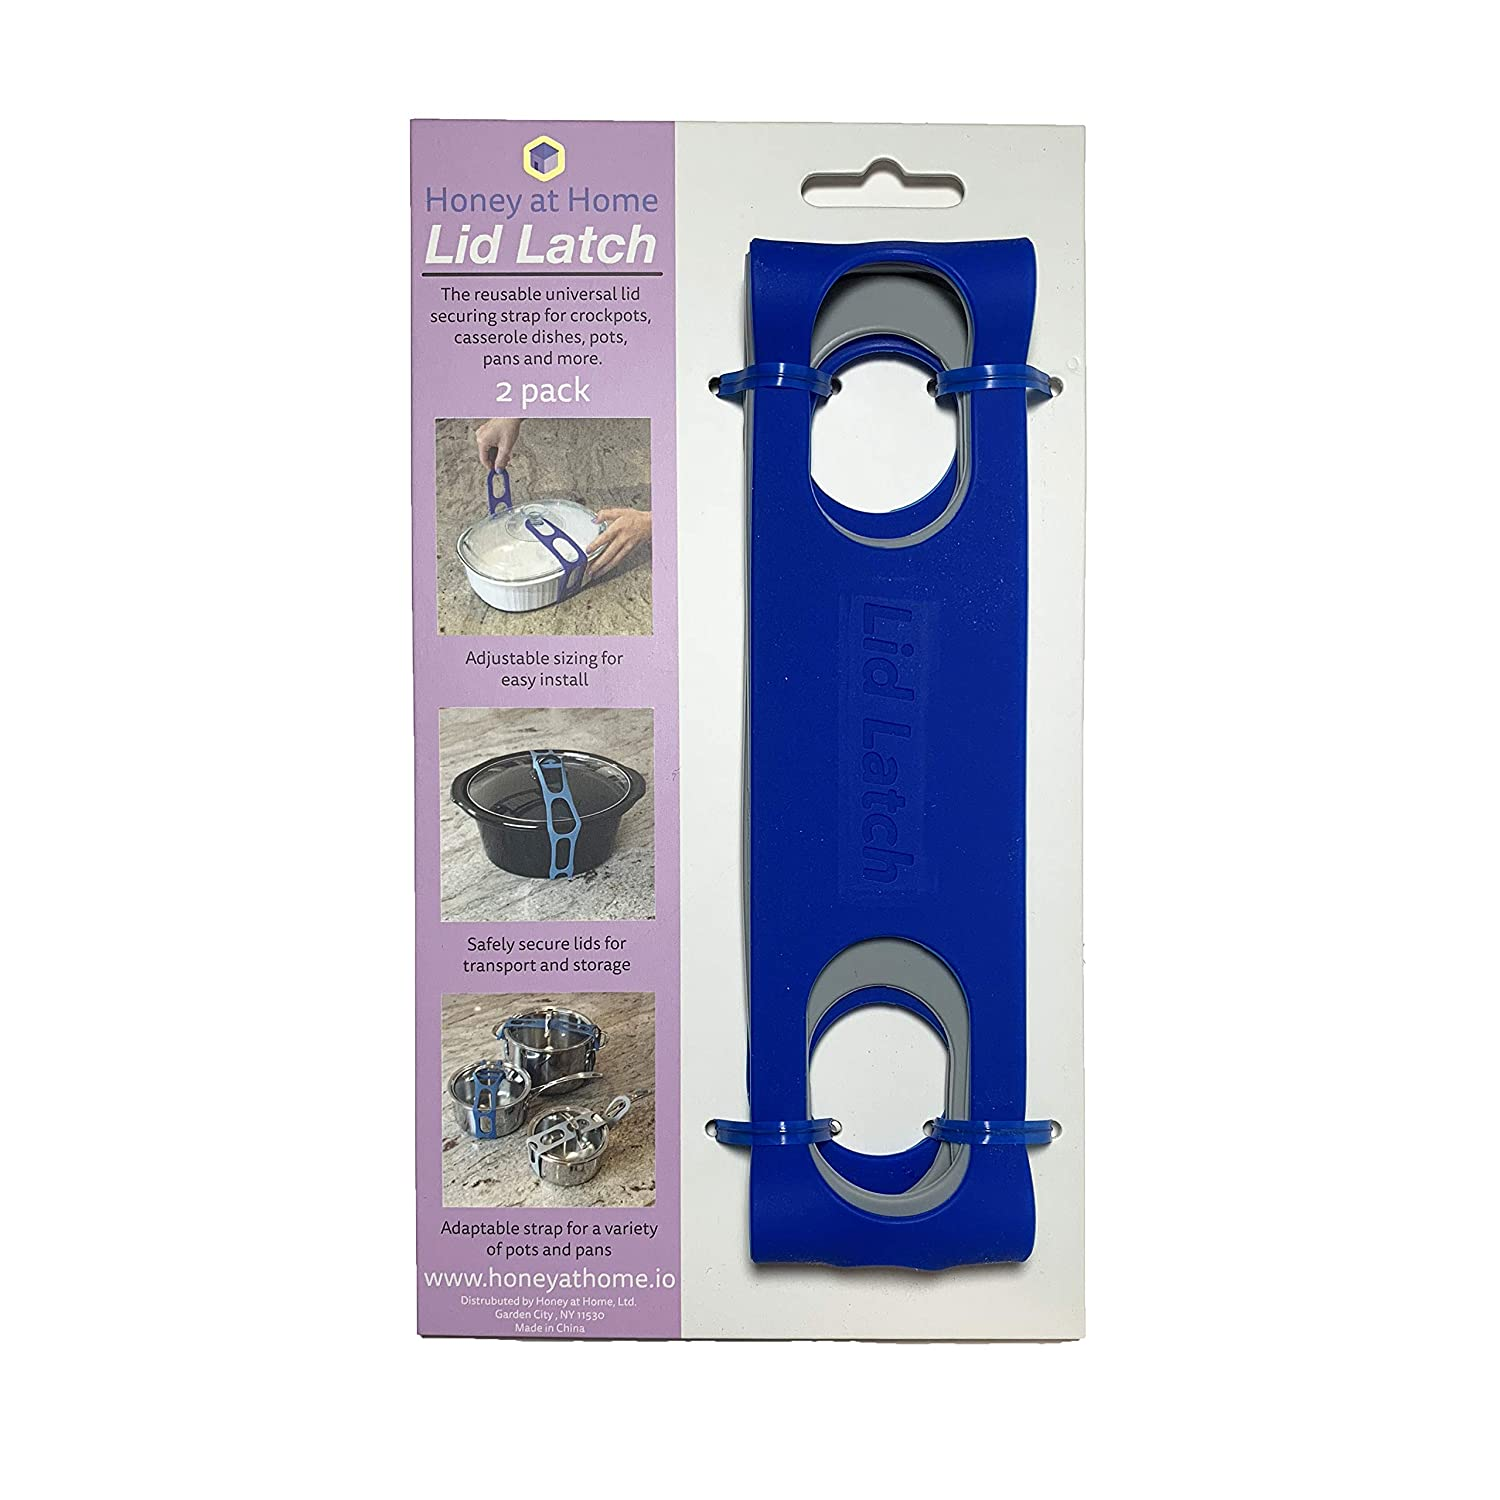 Lid Latch the reusable universal lid securing strap for crockpots, casserole dishes, pots, pans and more. Make it easy to transport your favorite dishes with one simple, flexible strap.(Retail 2 Pack)